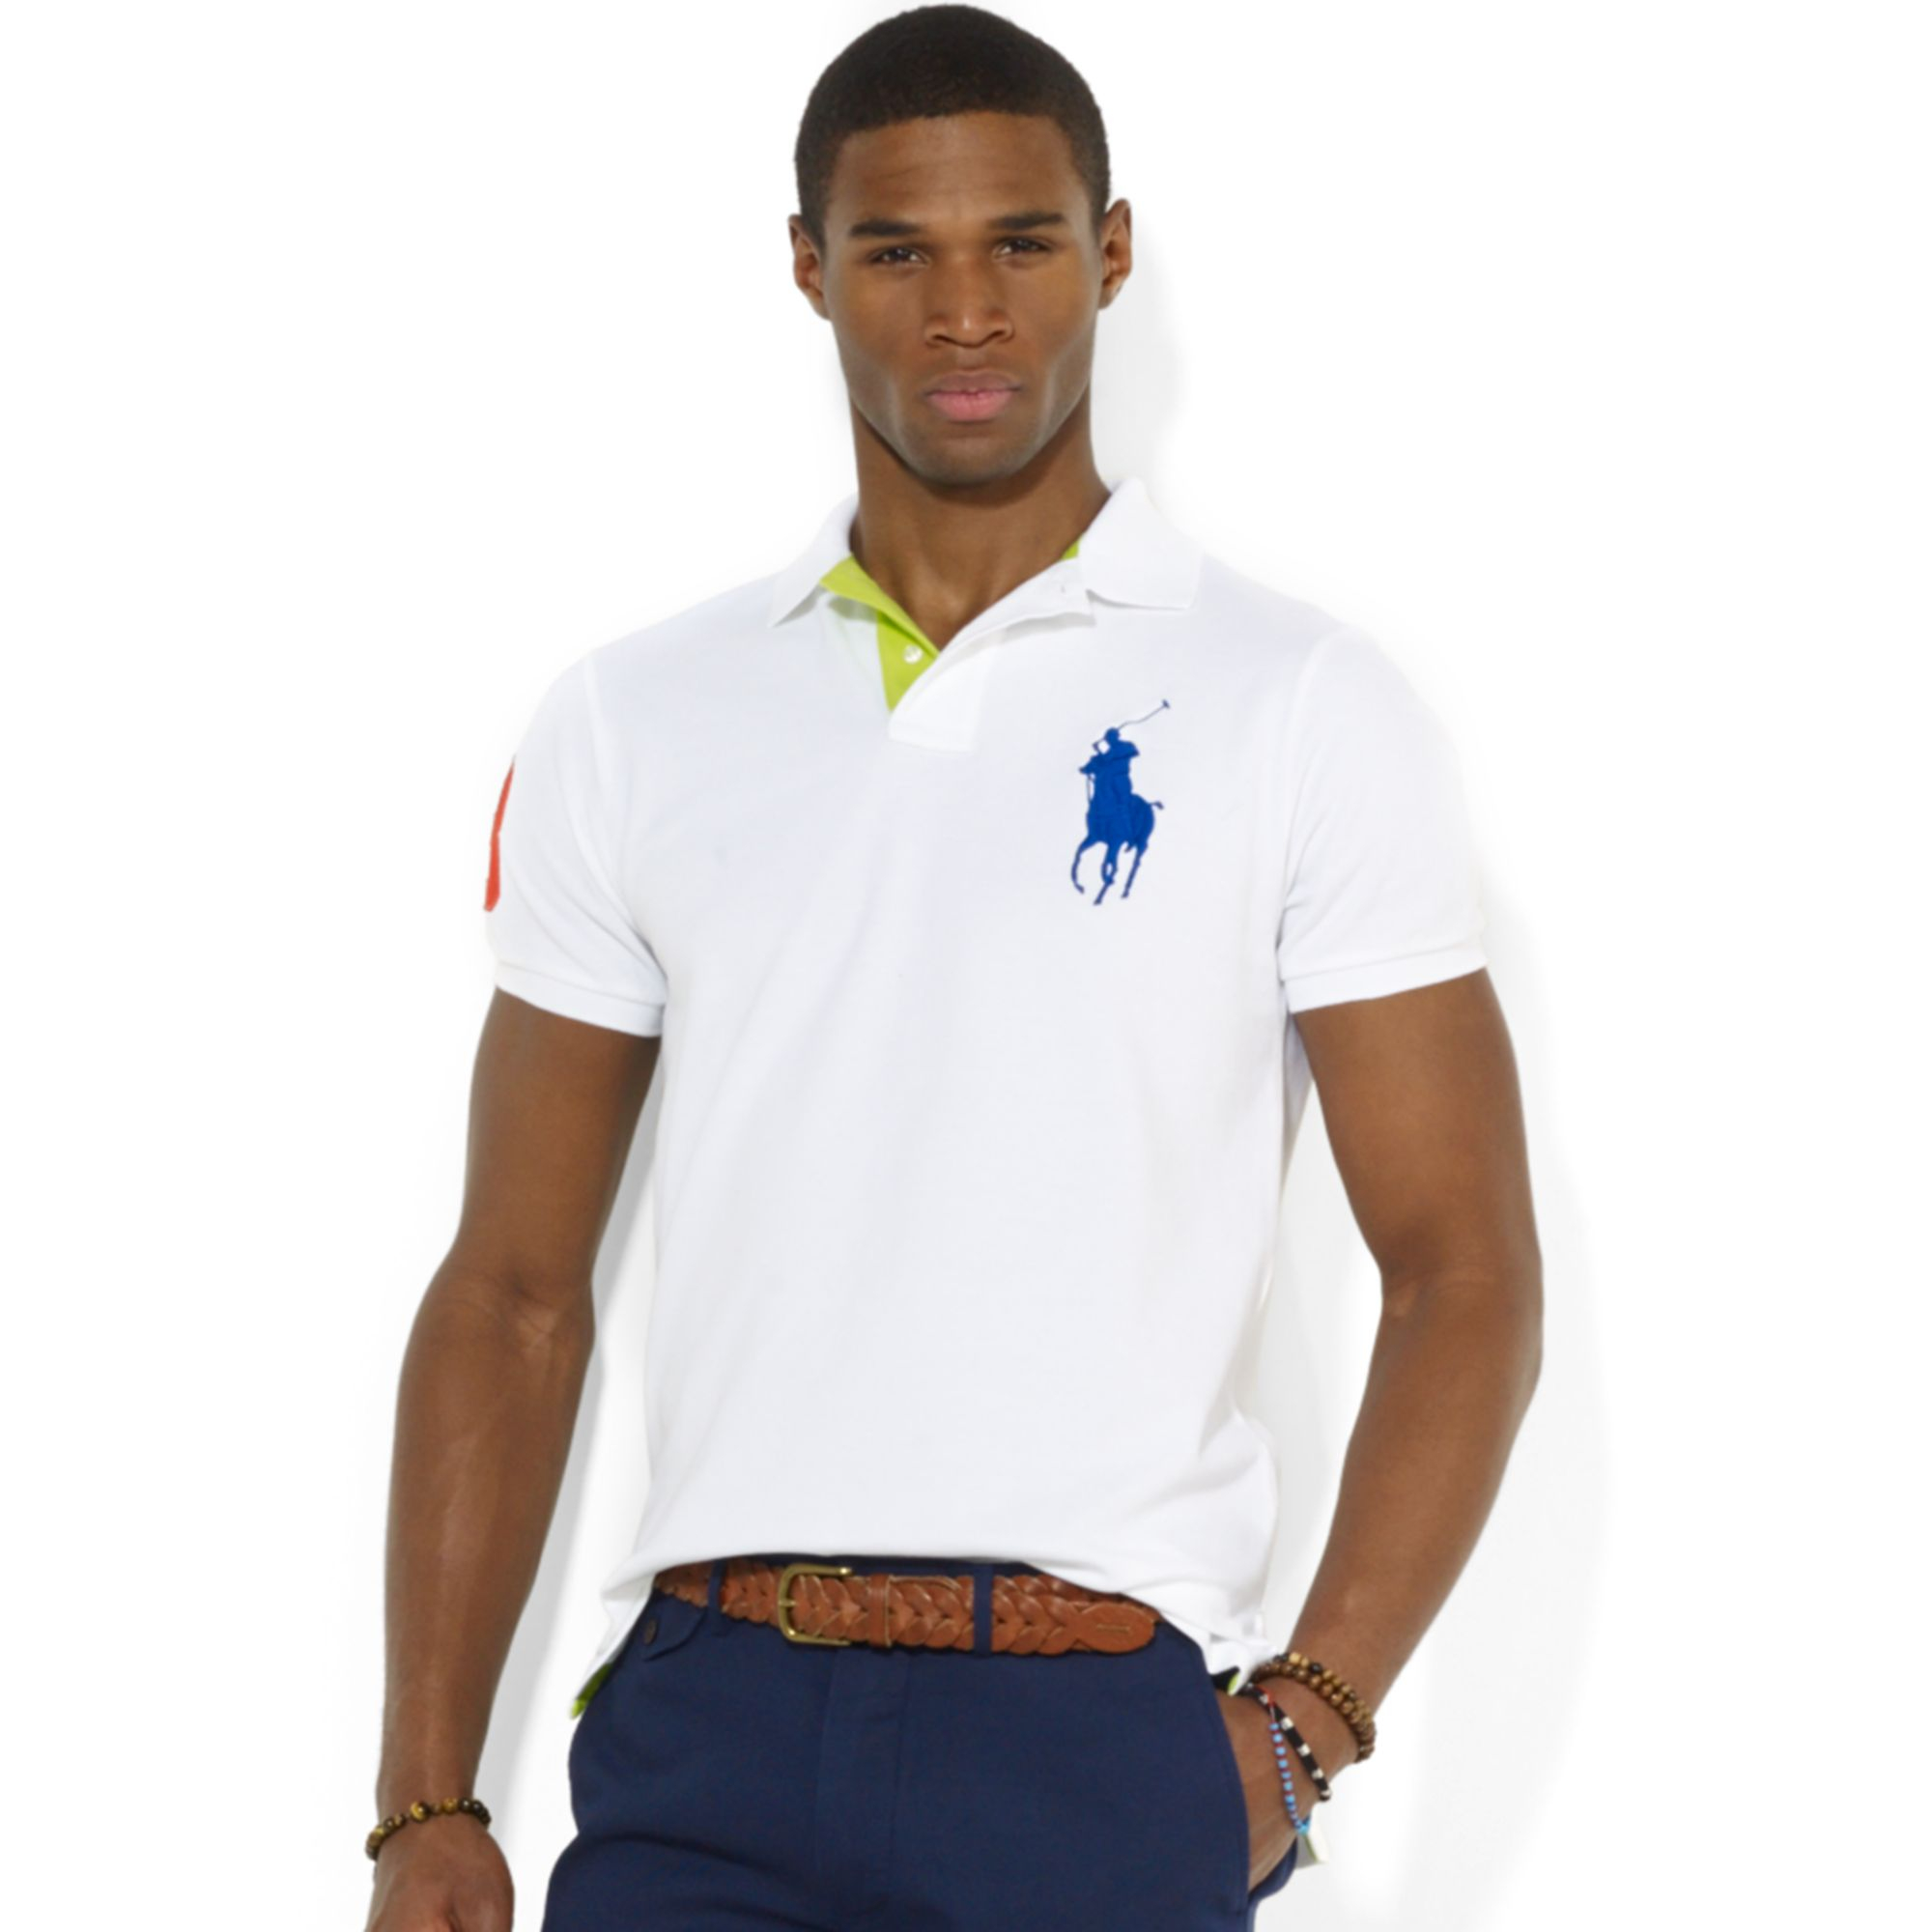 3ae372ac10d Lyst - Polo Ralph Lauren Custom Fit Big Pony Mesh Polo Shirt in ...